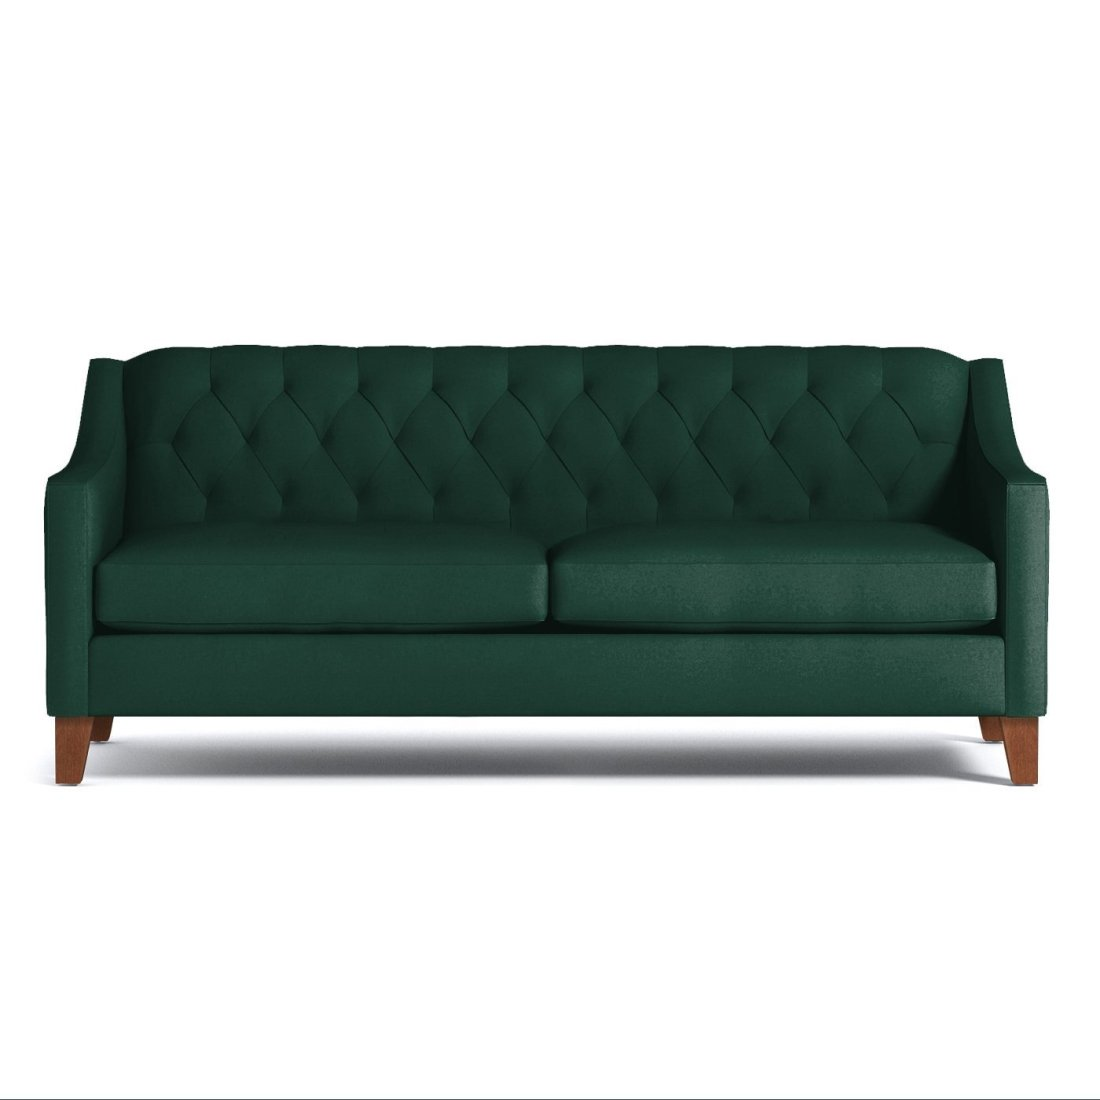 Brilliant The Best Sofas For Small Spaces City Chic Decor Ocoug Best Dining Table And Chair Ideas Images Ocougorg